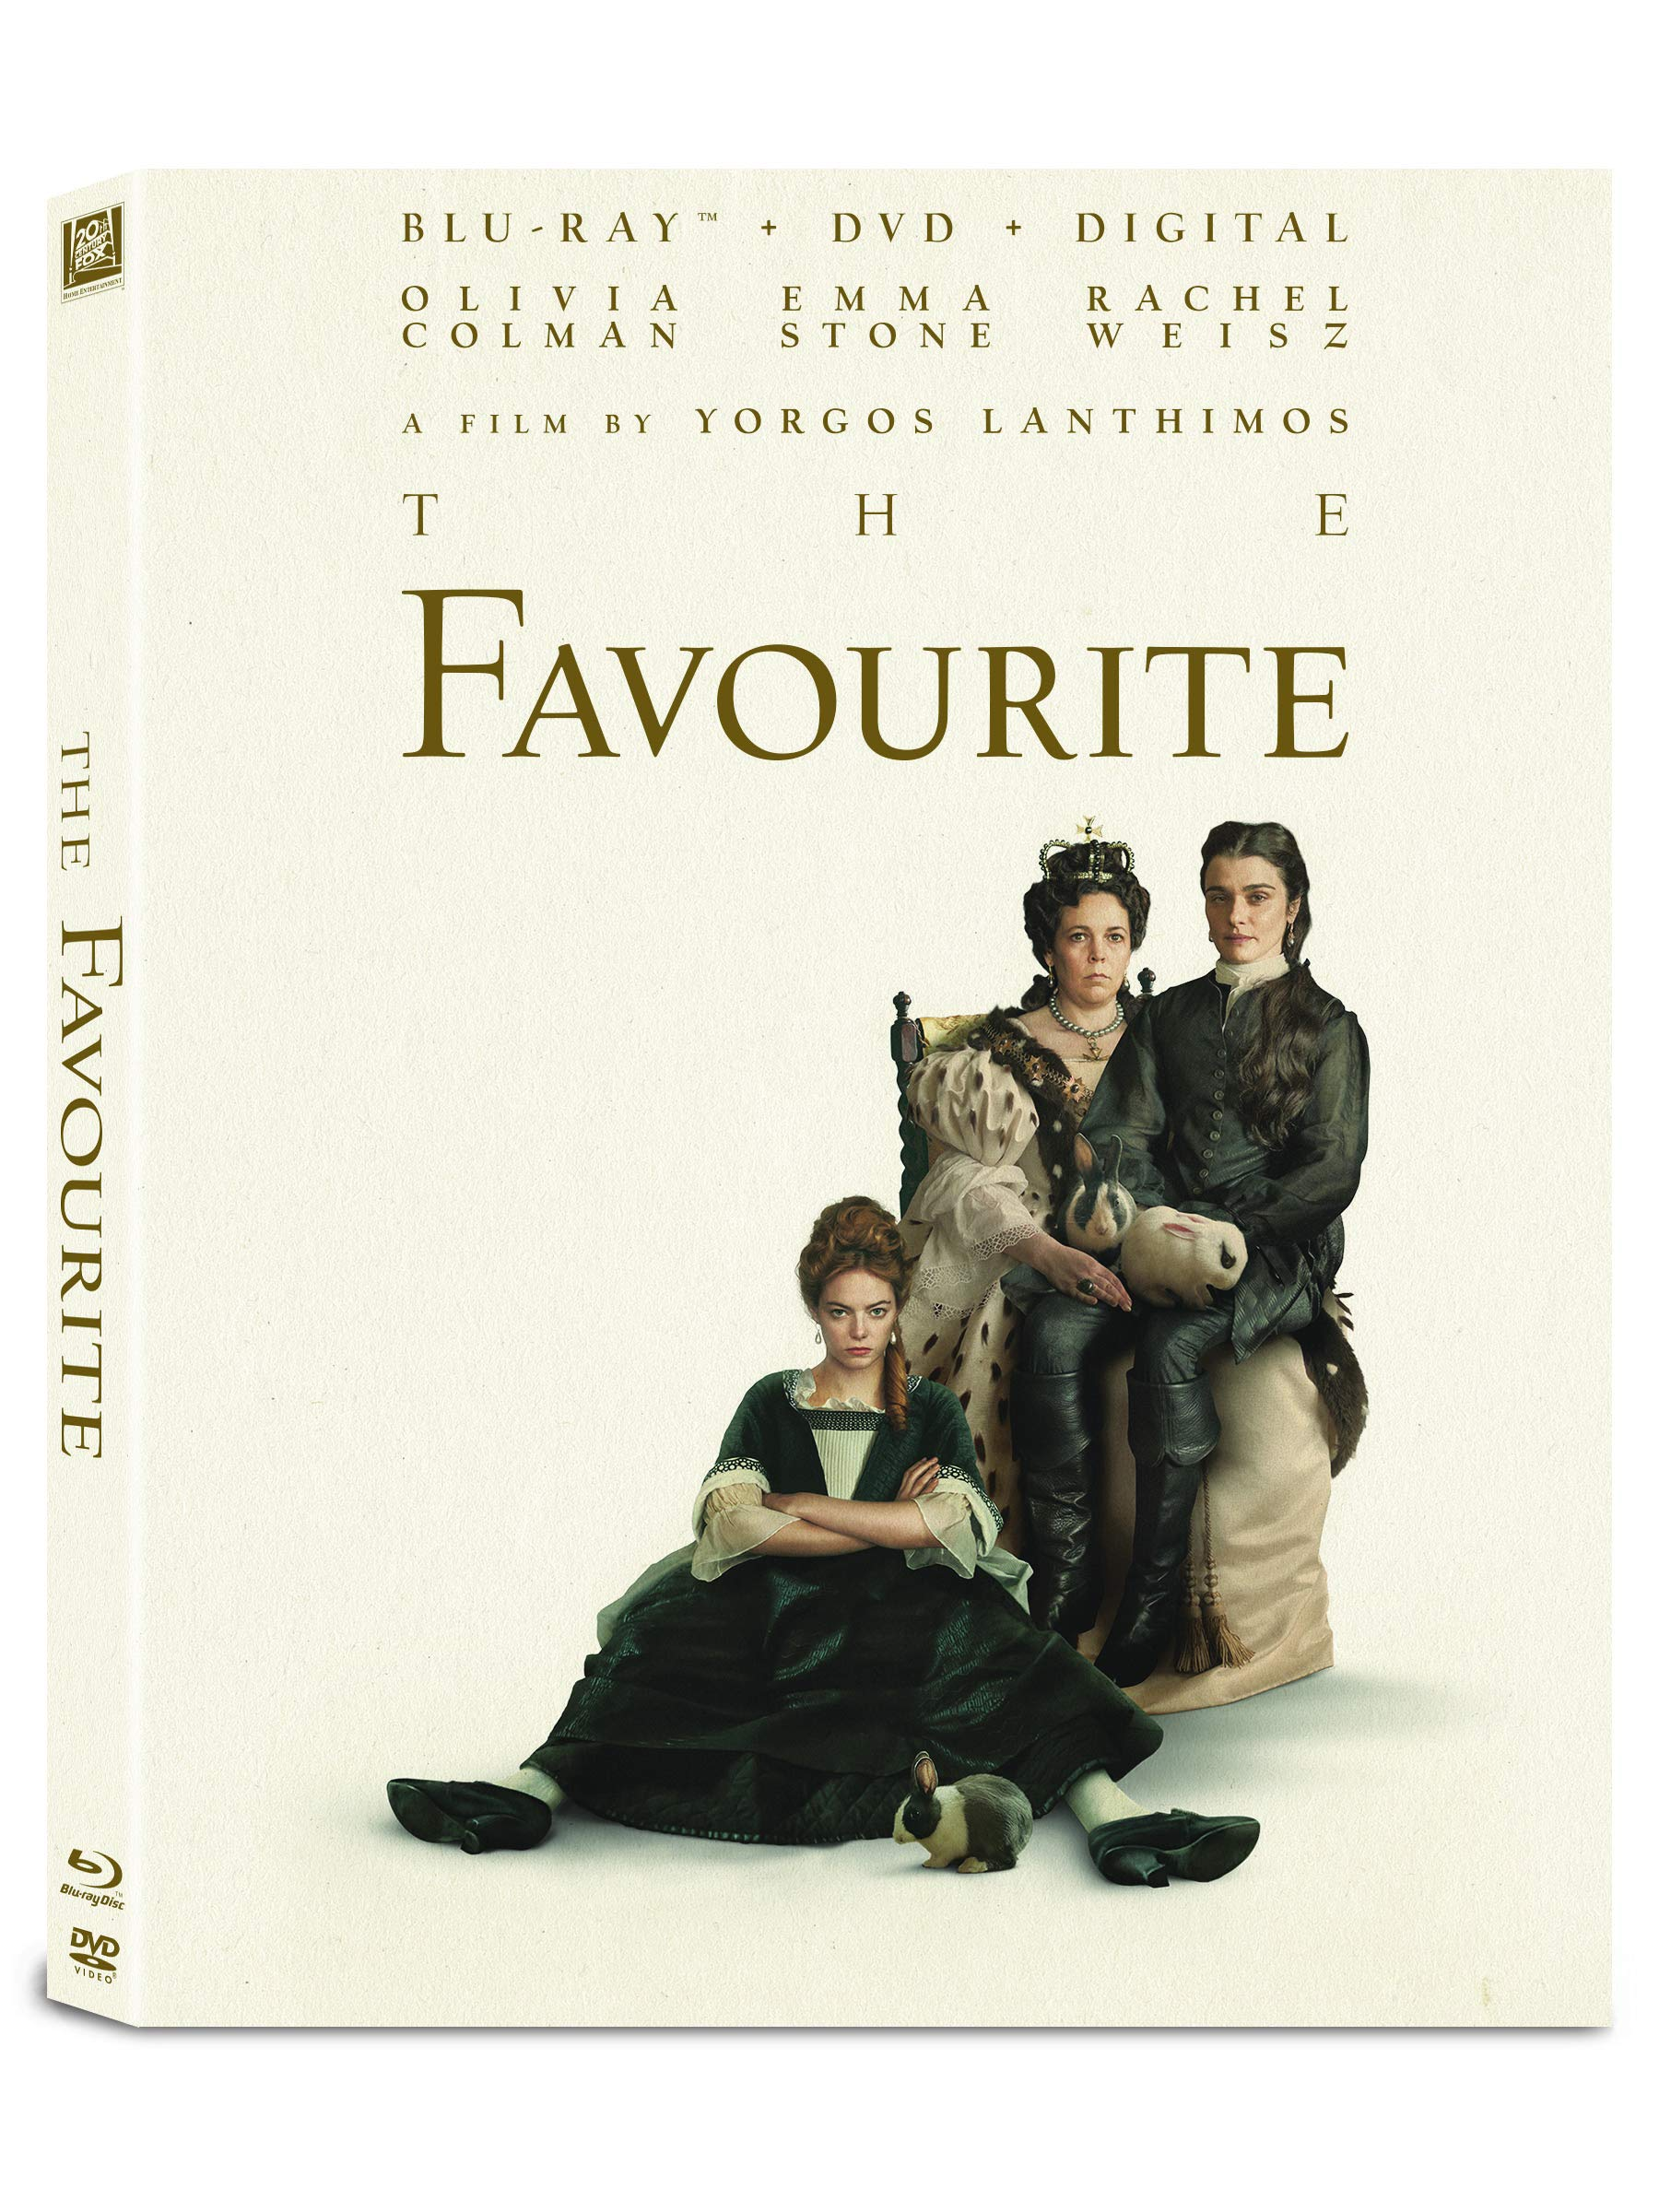 Blu-ray : The Favourite (With DVD, Digitally Mastered in HD, 2 Pack)